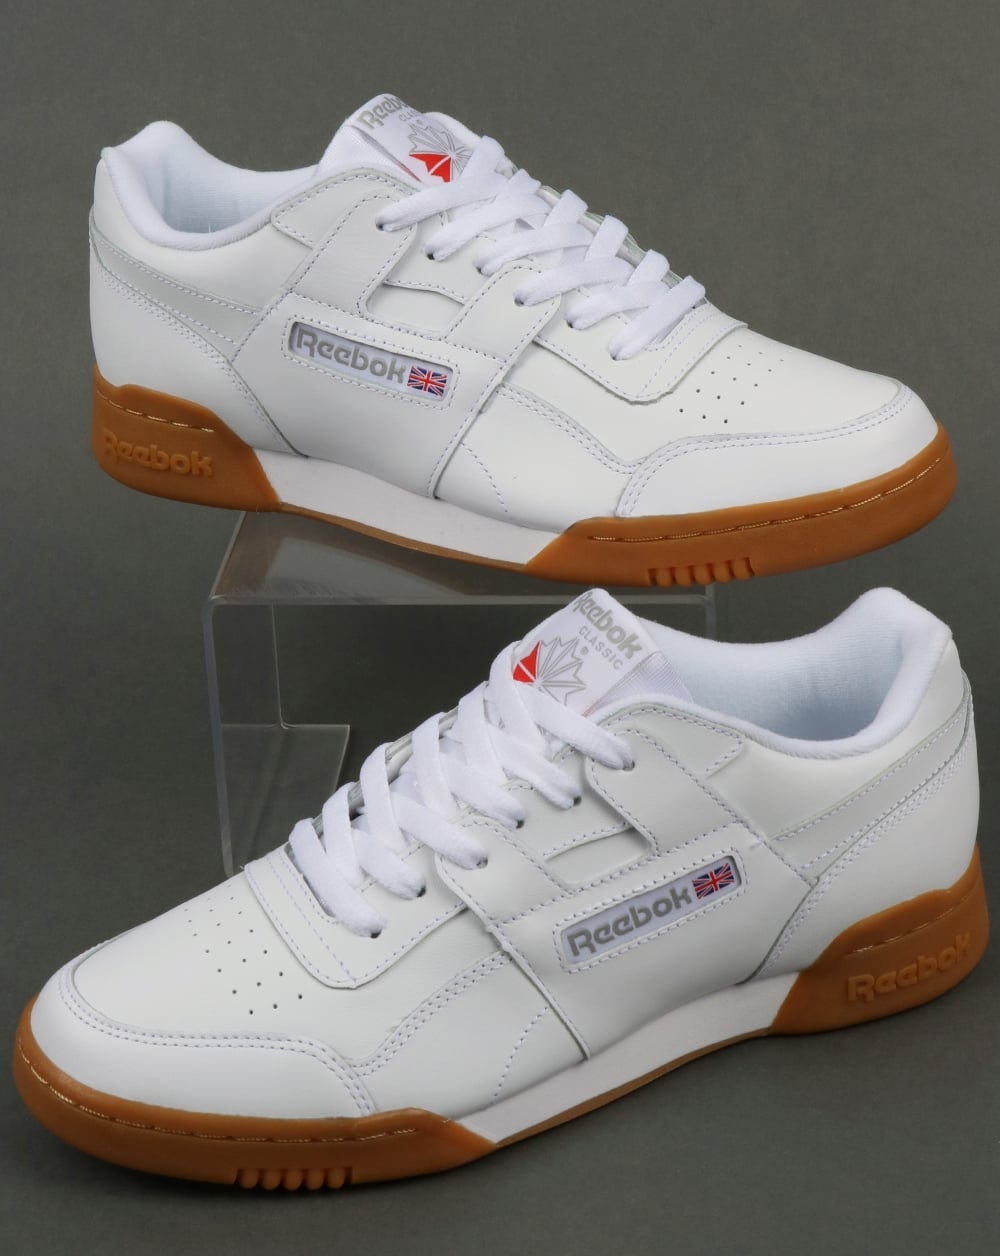 b83fee21c35 Reebok Reebok Workout Plus Trainers White Carbon Gum